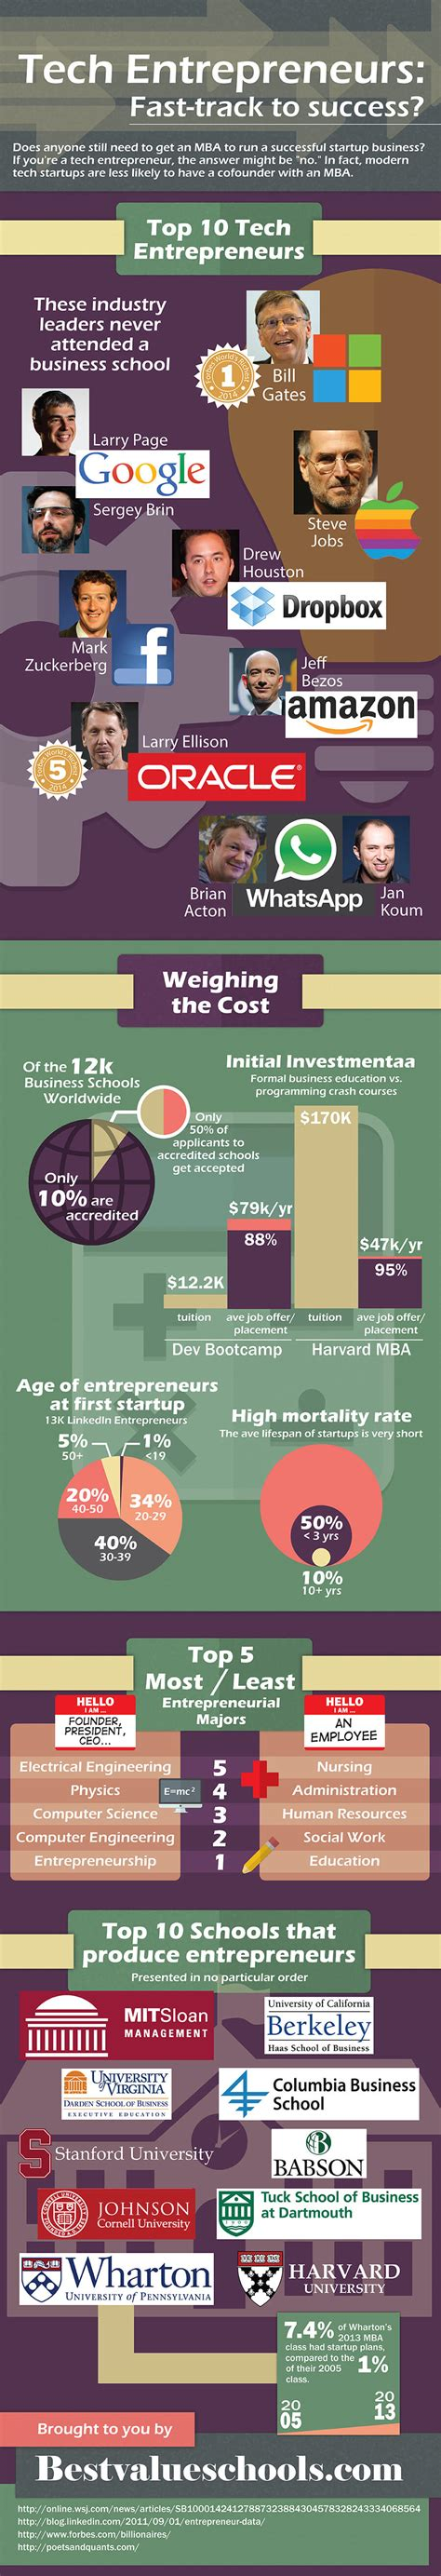 Best Mba For Tech Entrepreneurs by Do You Really Need An Mba To Launch A Tech Startup